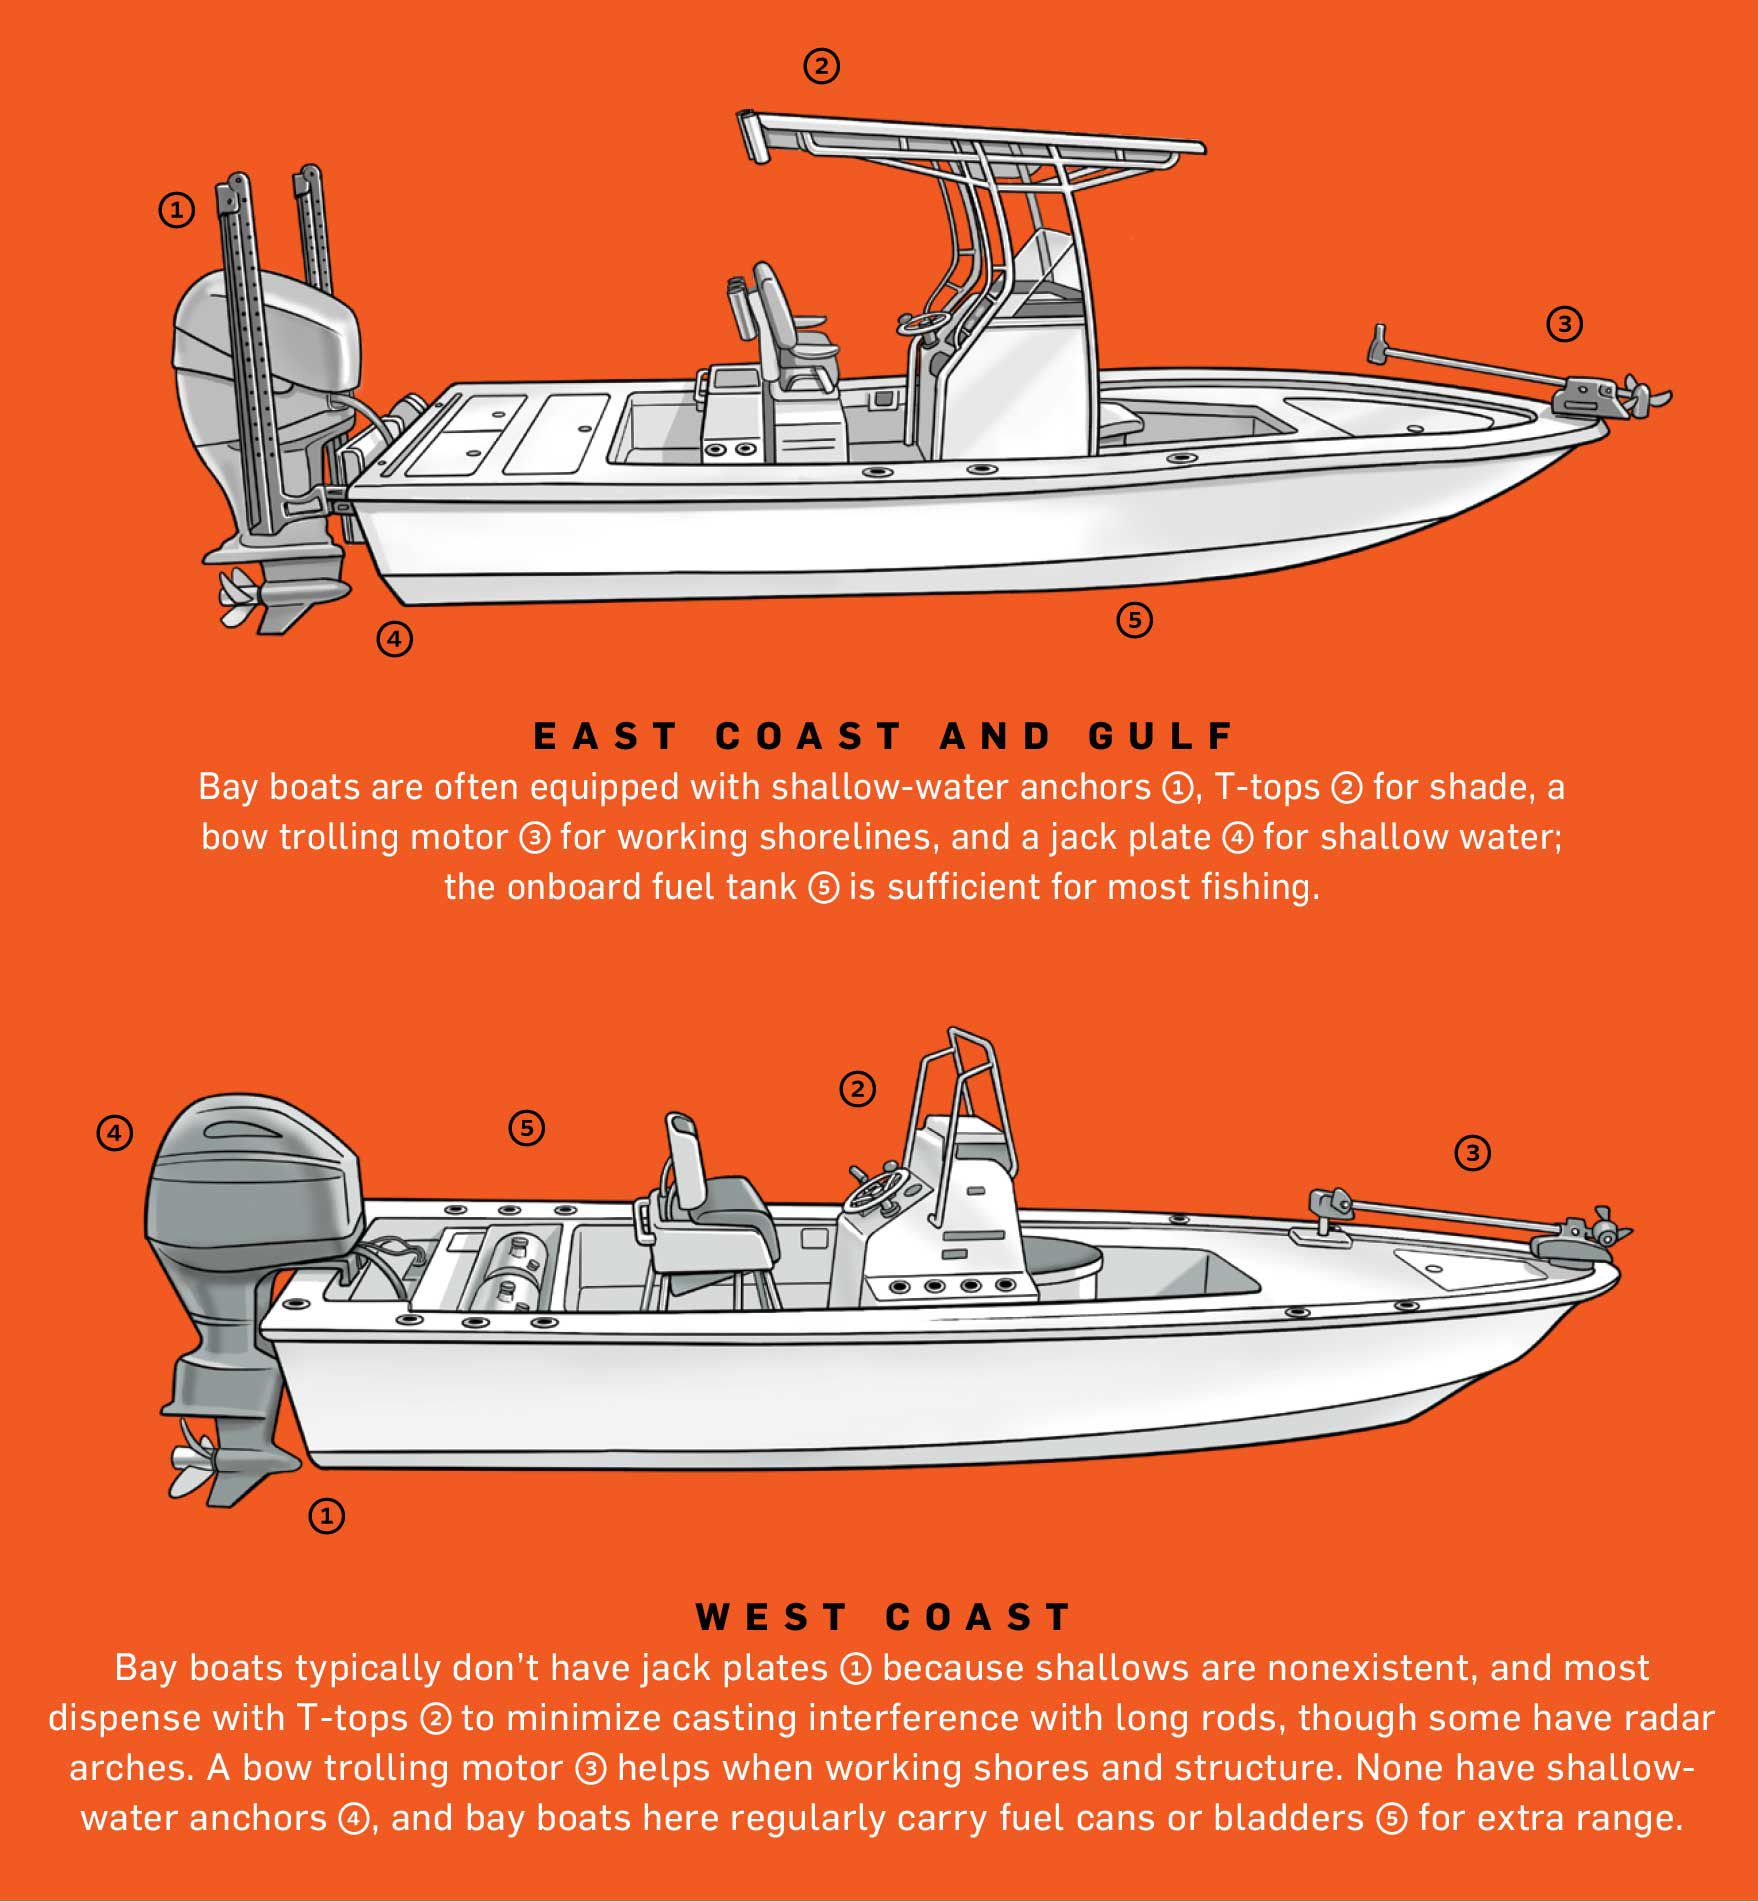 Bay boats are outfitted differently when fished on the West, versus East, Coast.